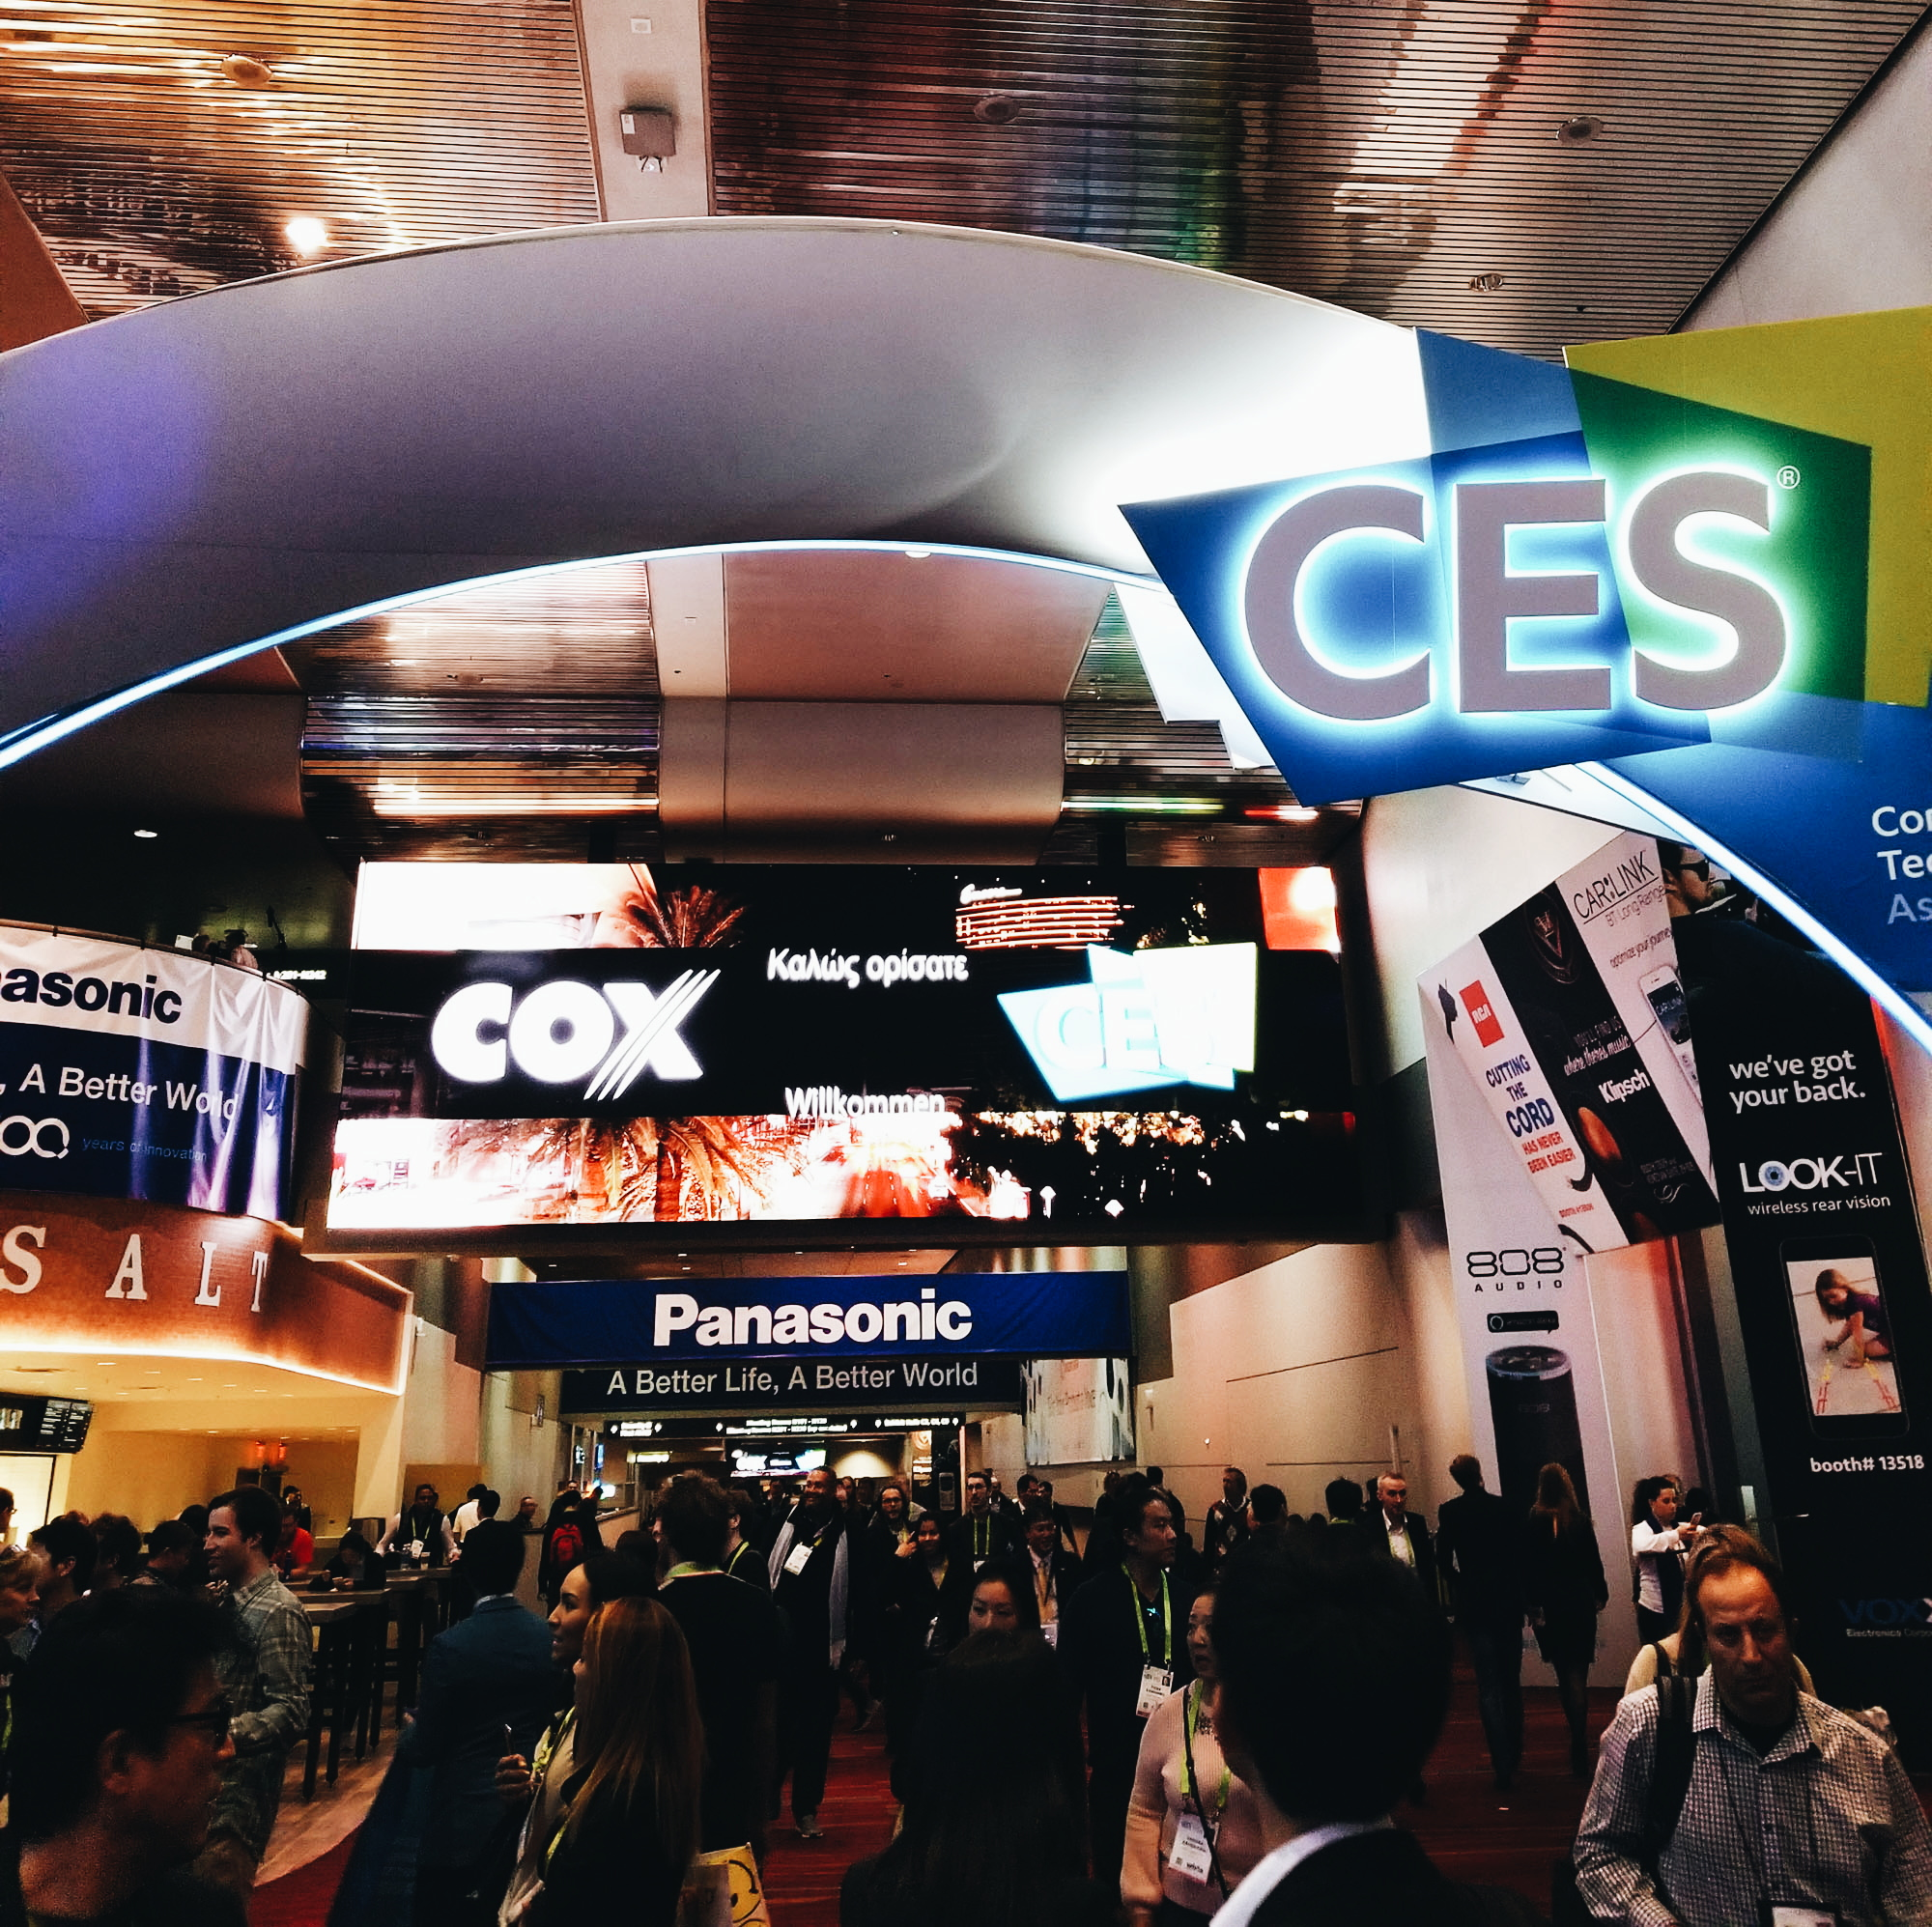 CES 2018 Las Vegas Convention Center